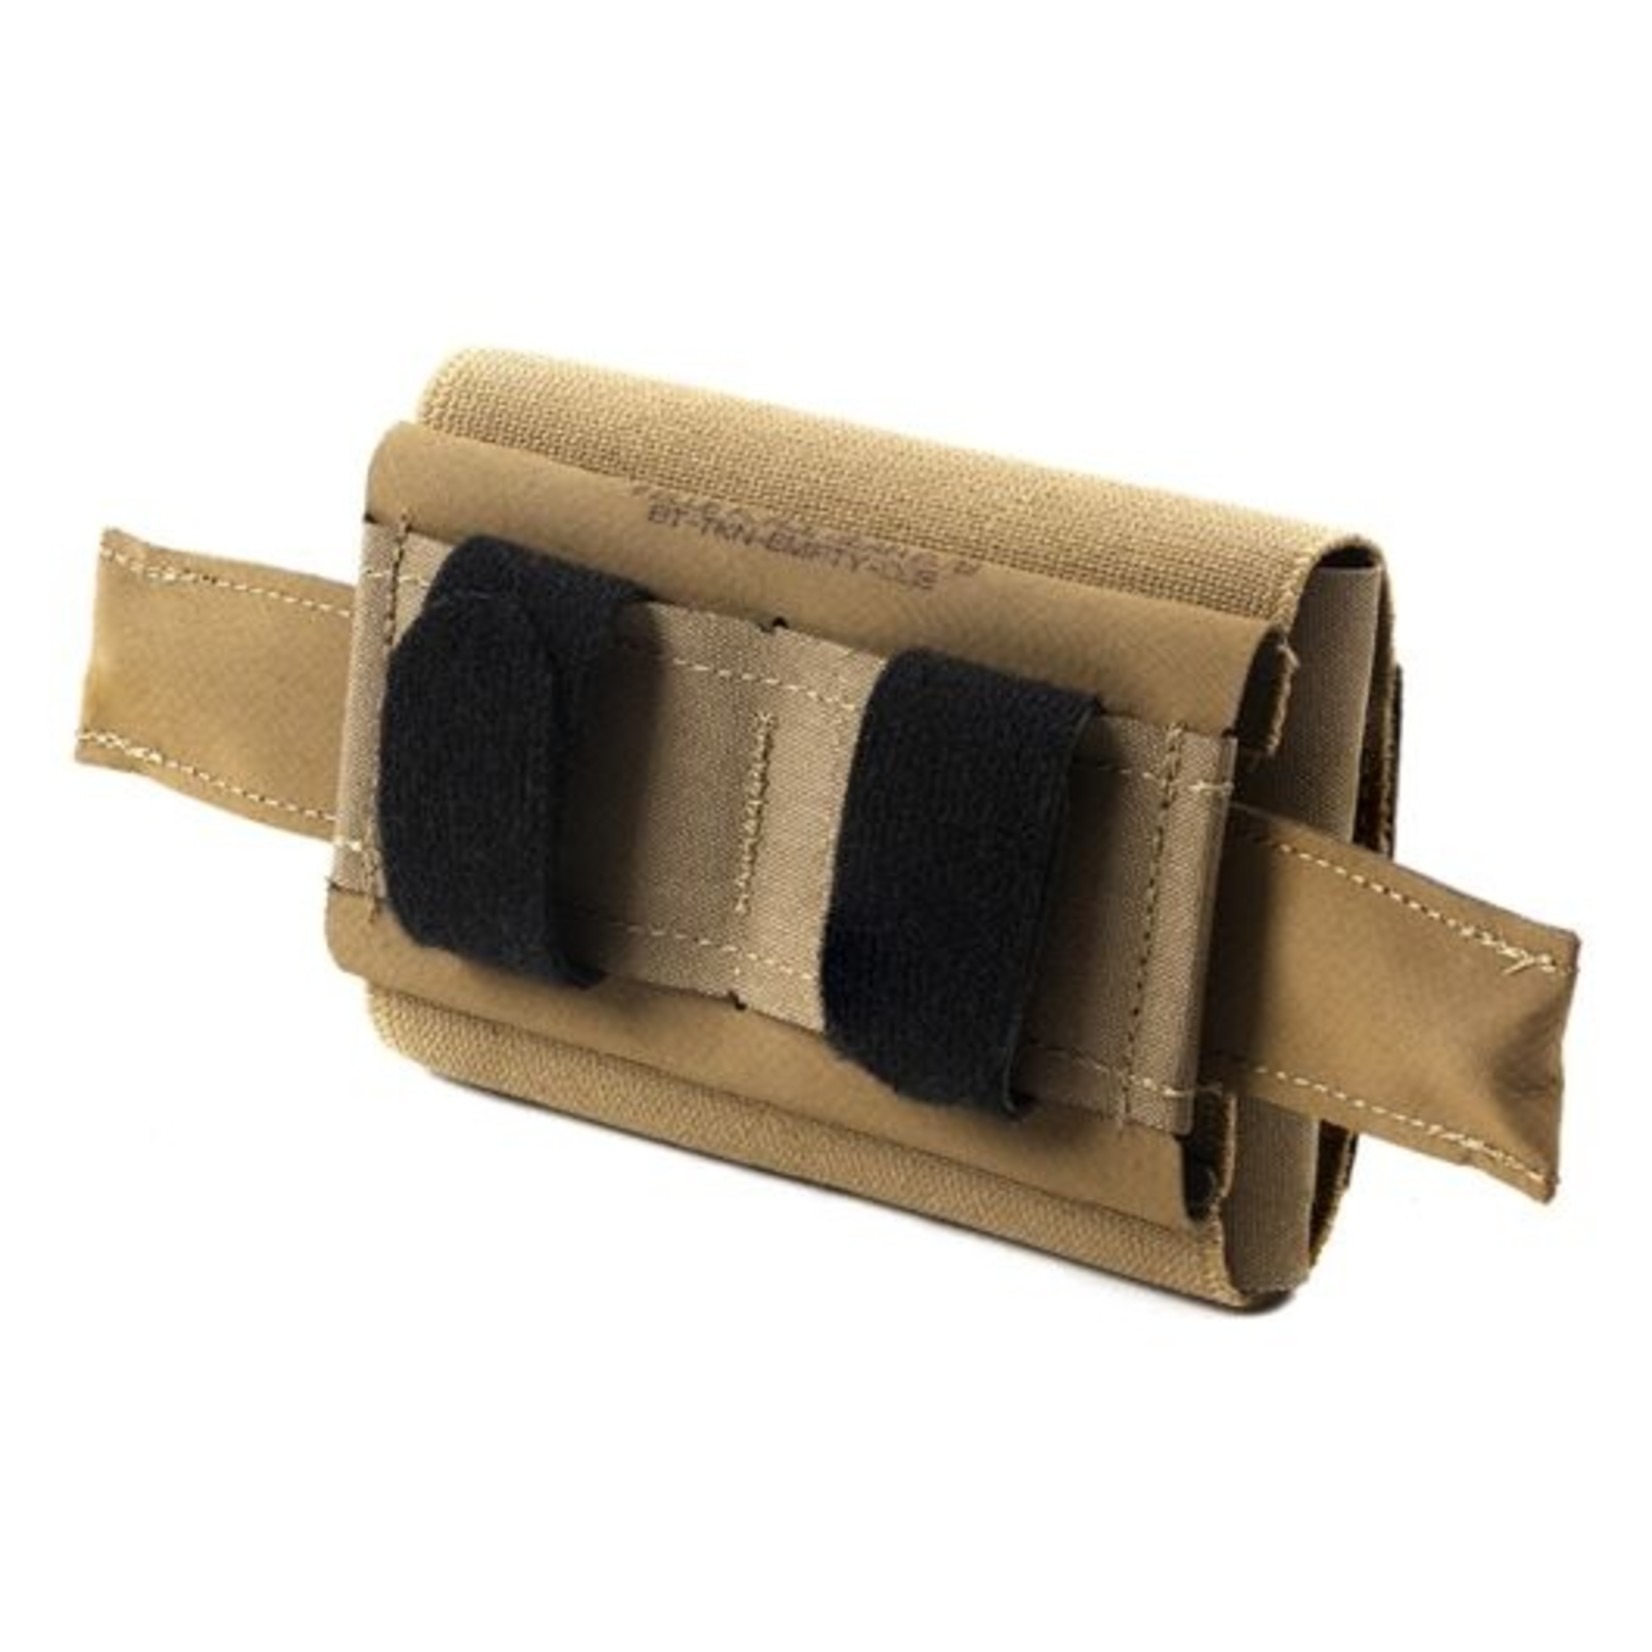 BLUE FORCE GEAR MICRO TRAUMA KIT NOW!- BELT MOUNTED